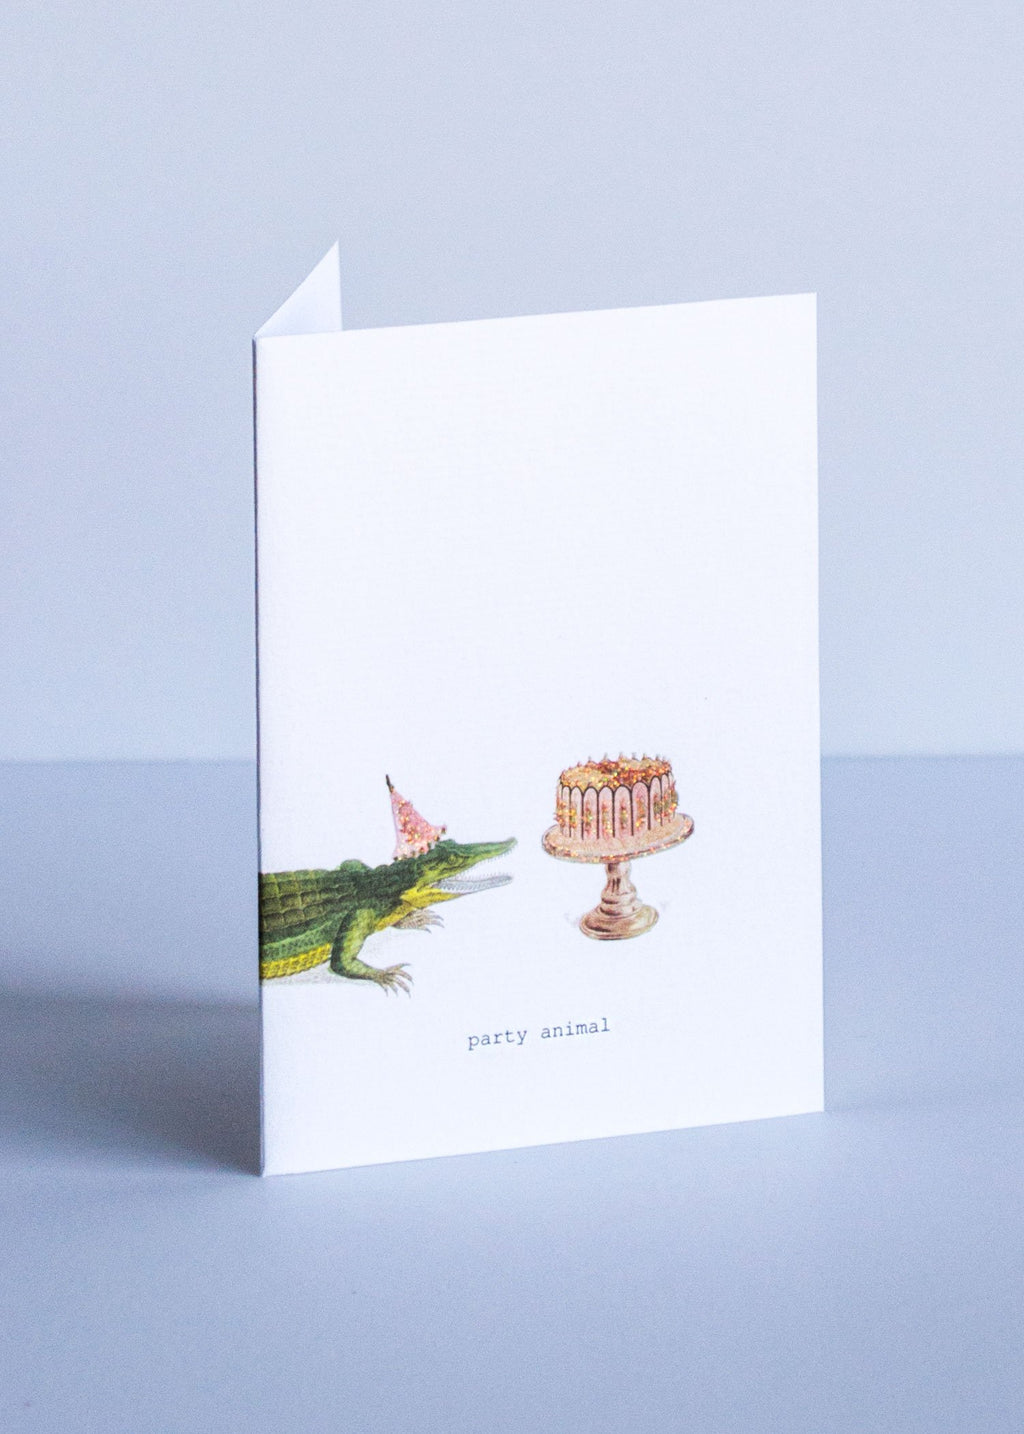 party animal greeting card || tokyomilk || beautybar